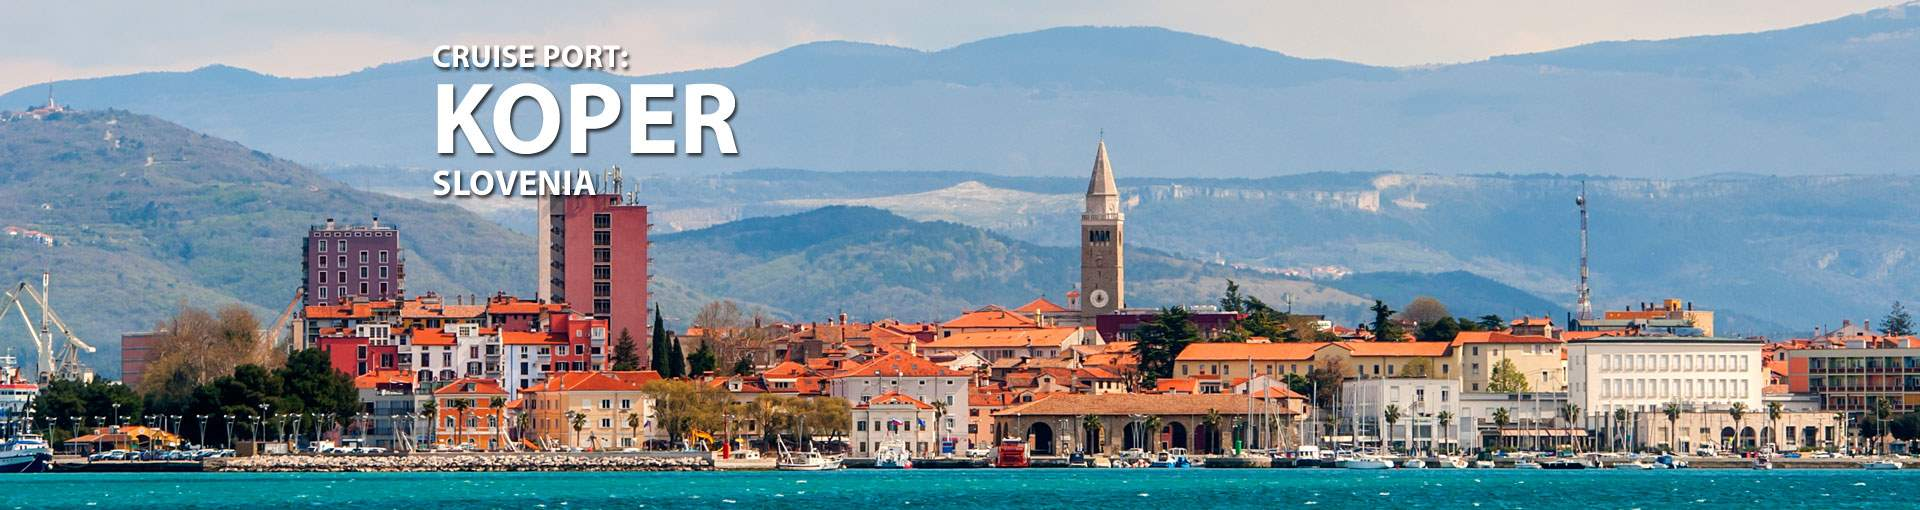 Cruises to Koper, Slovenia